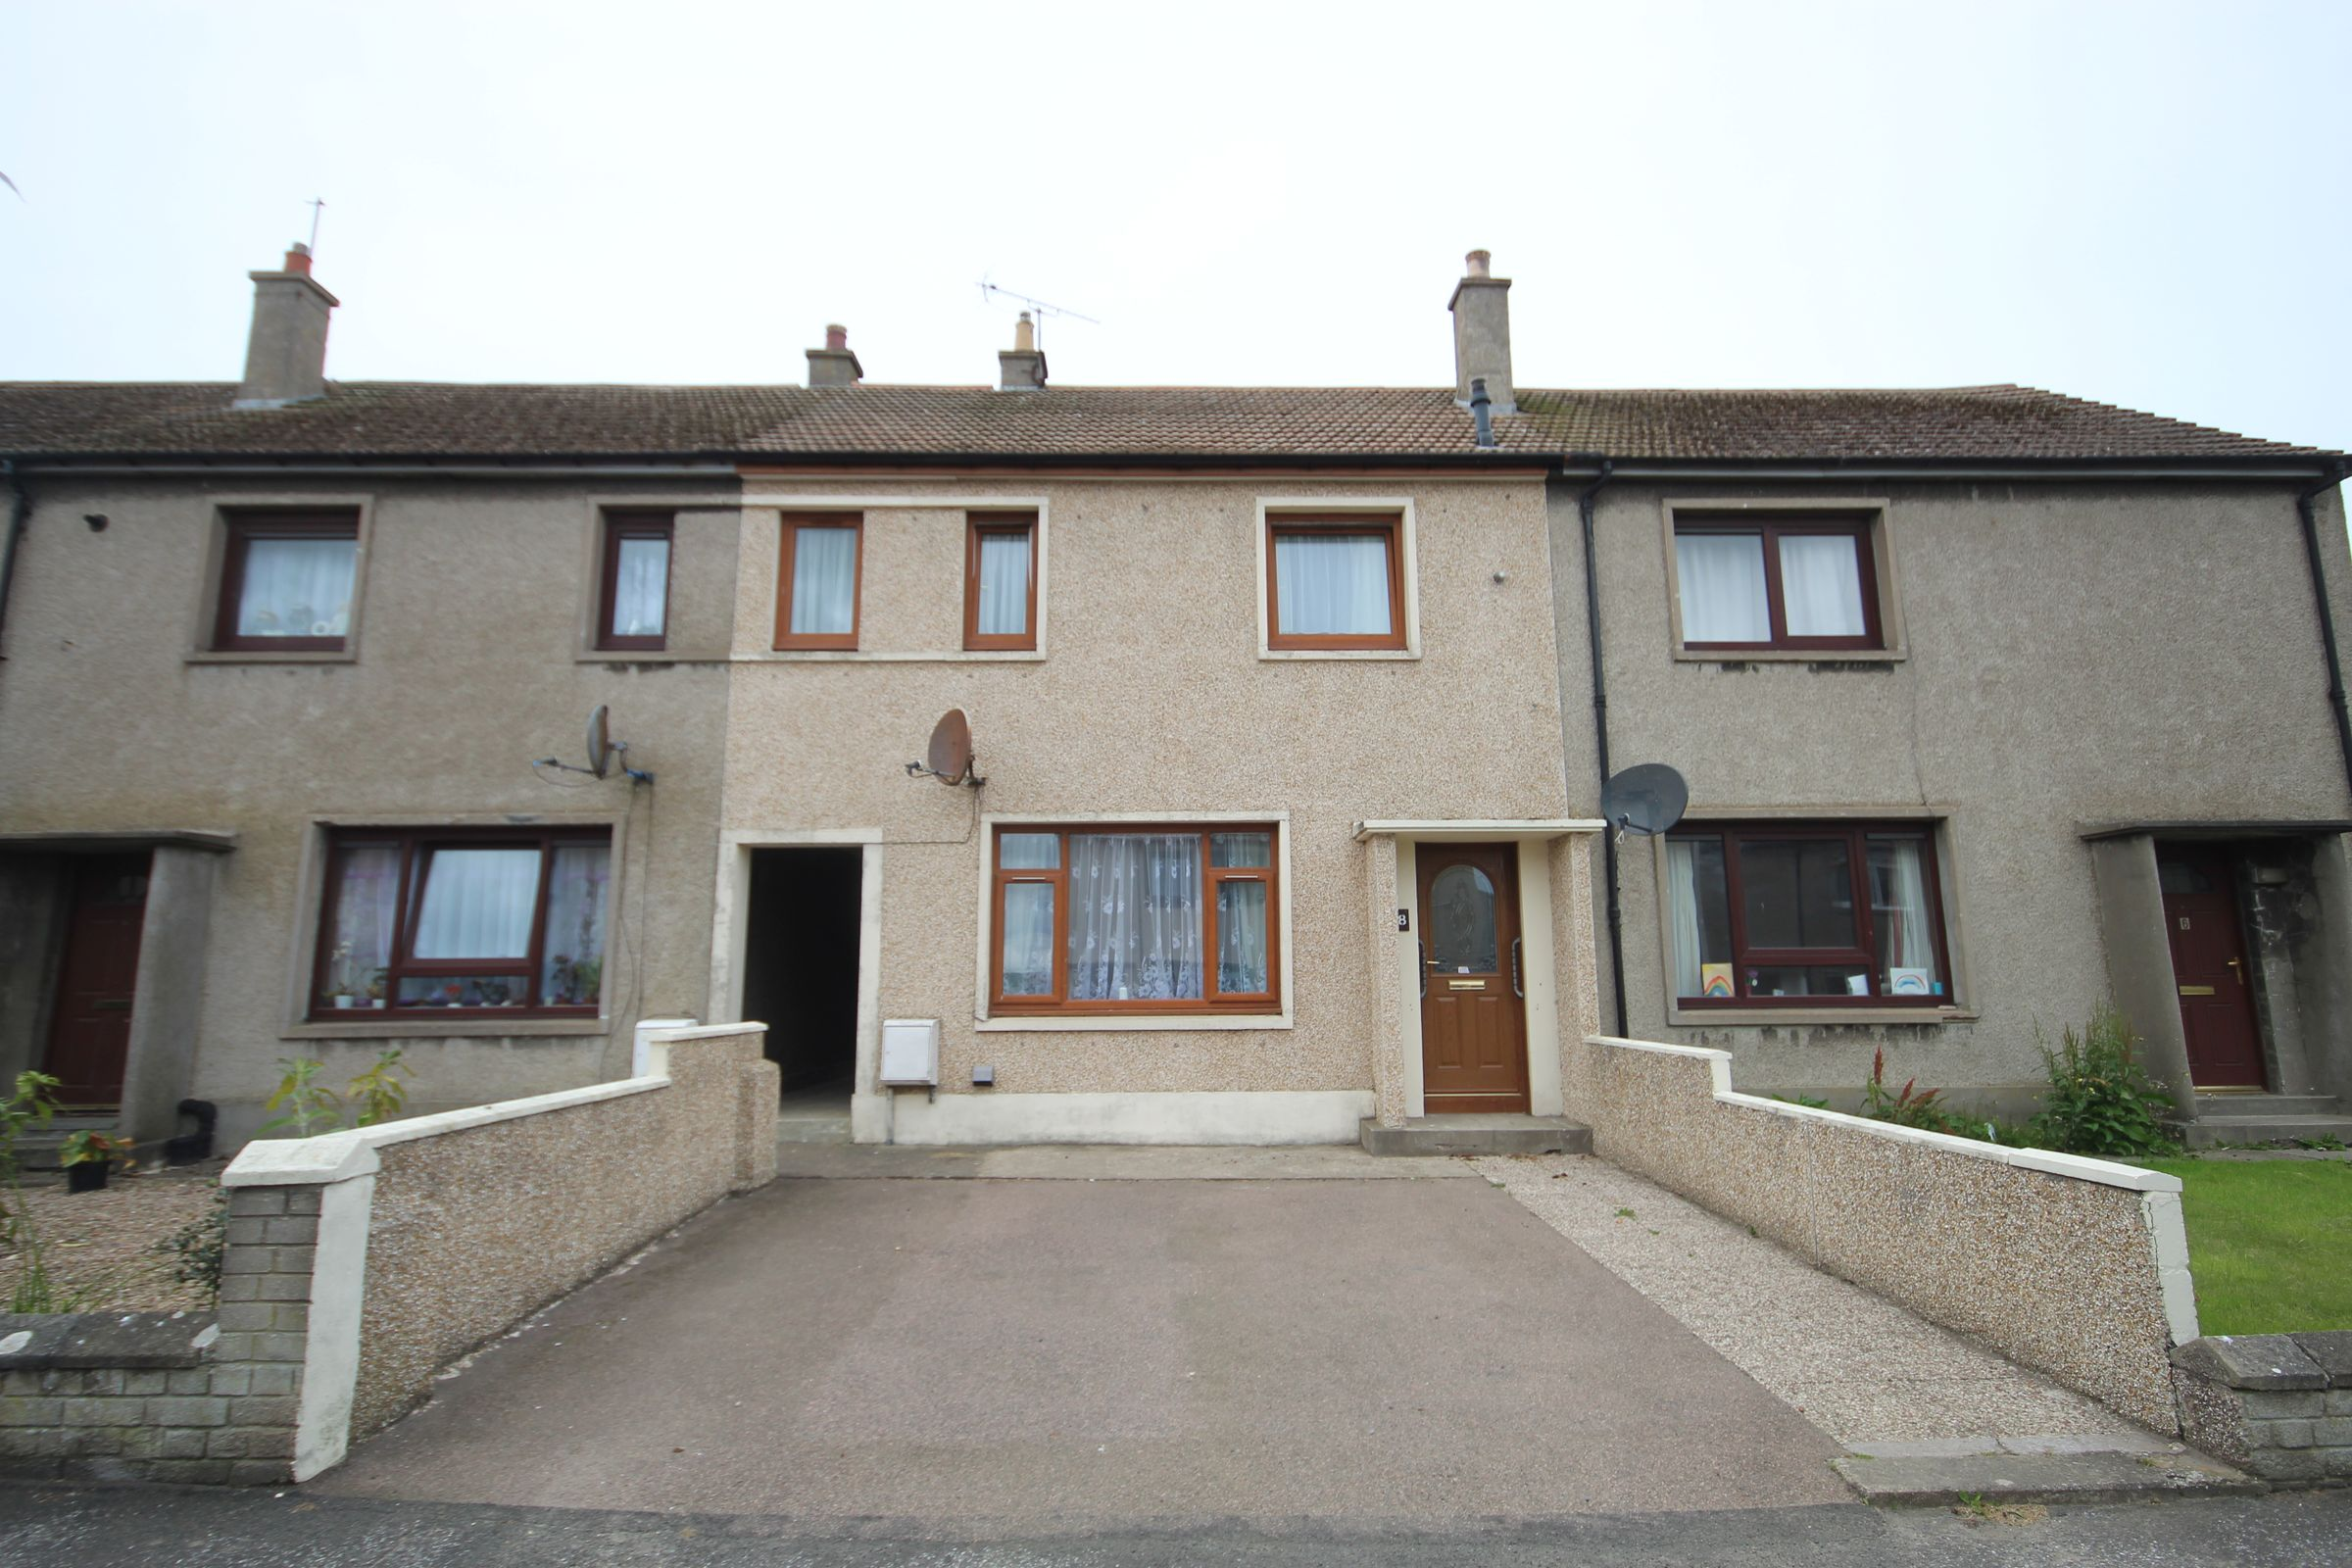 Property photo 1 of 19. 8 Malcolm Road, Banff